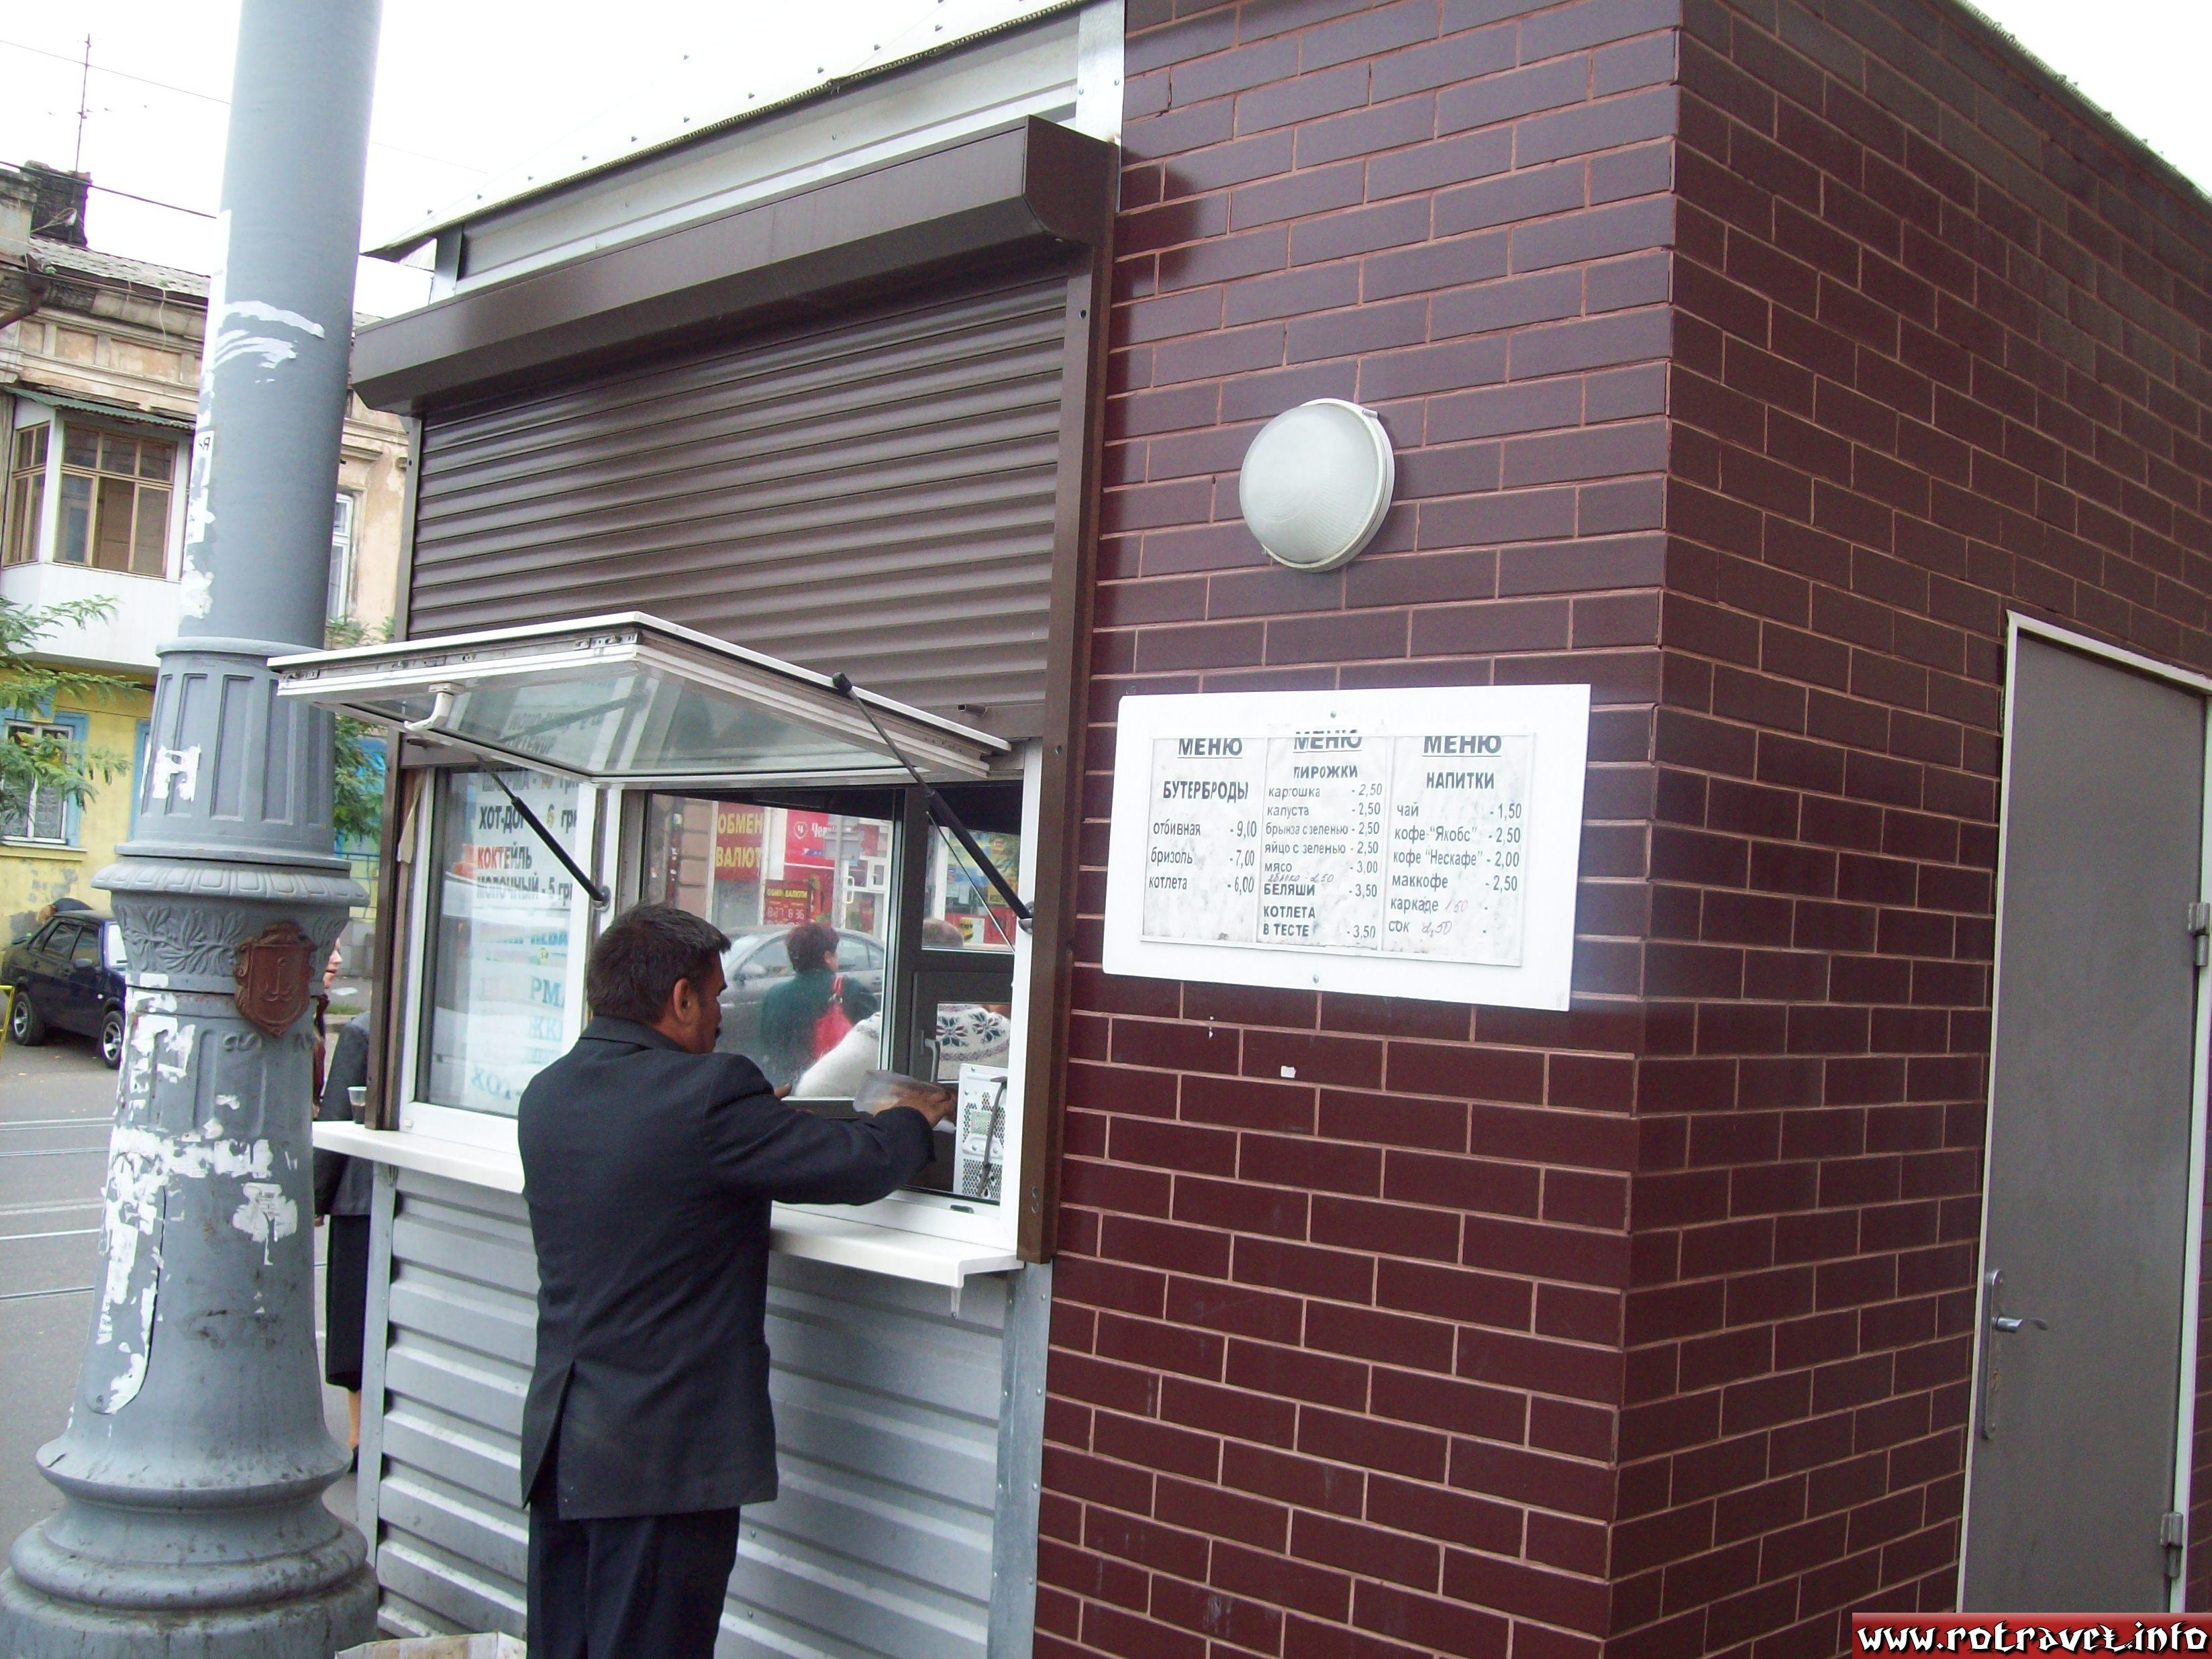 A kiosk with all kind of crumpets, just near to bus station